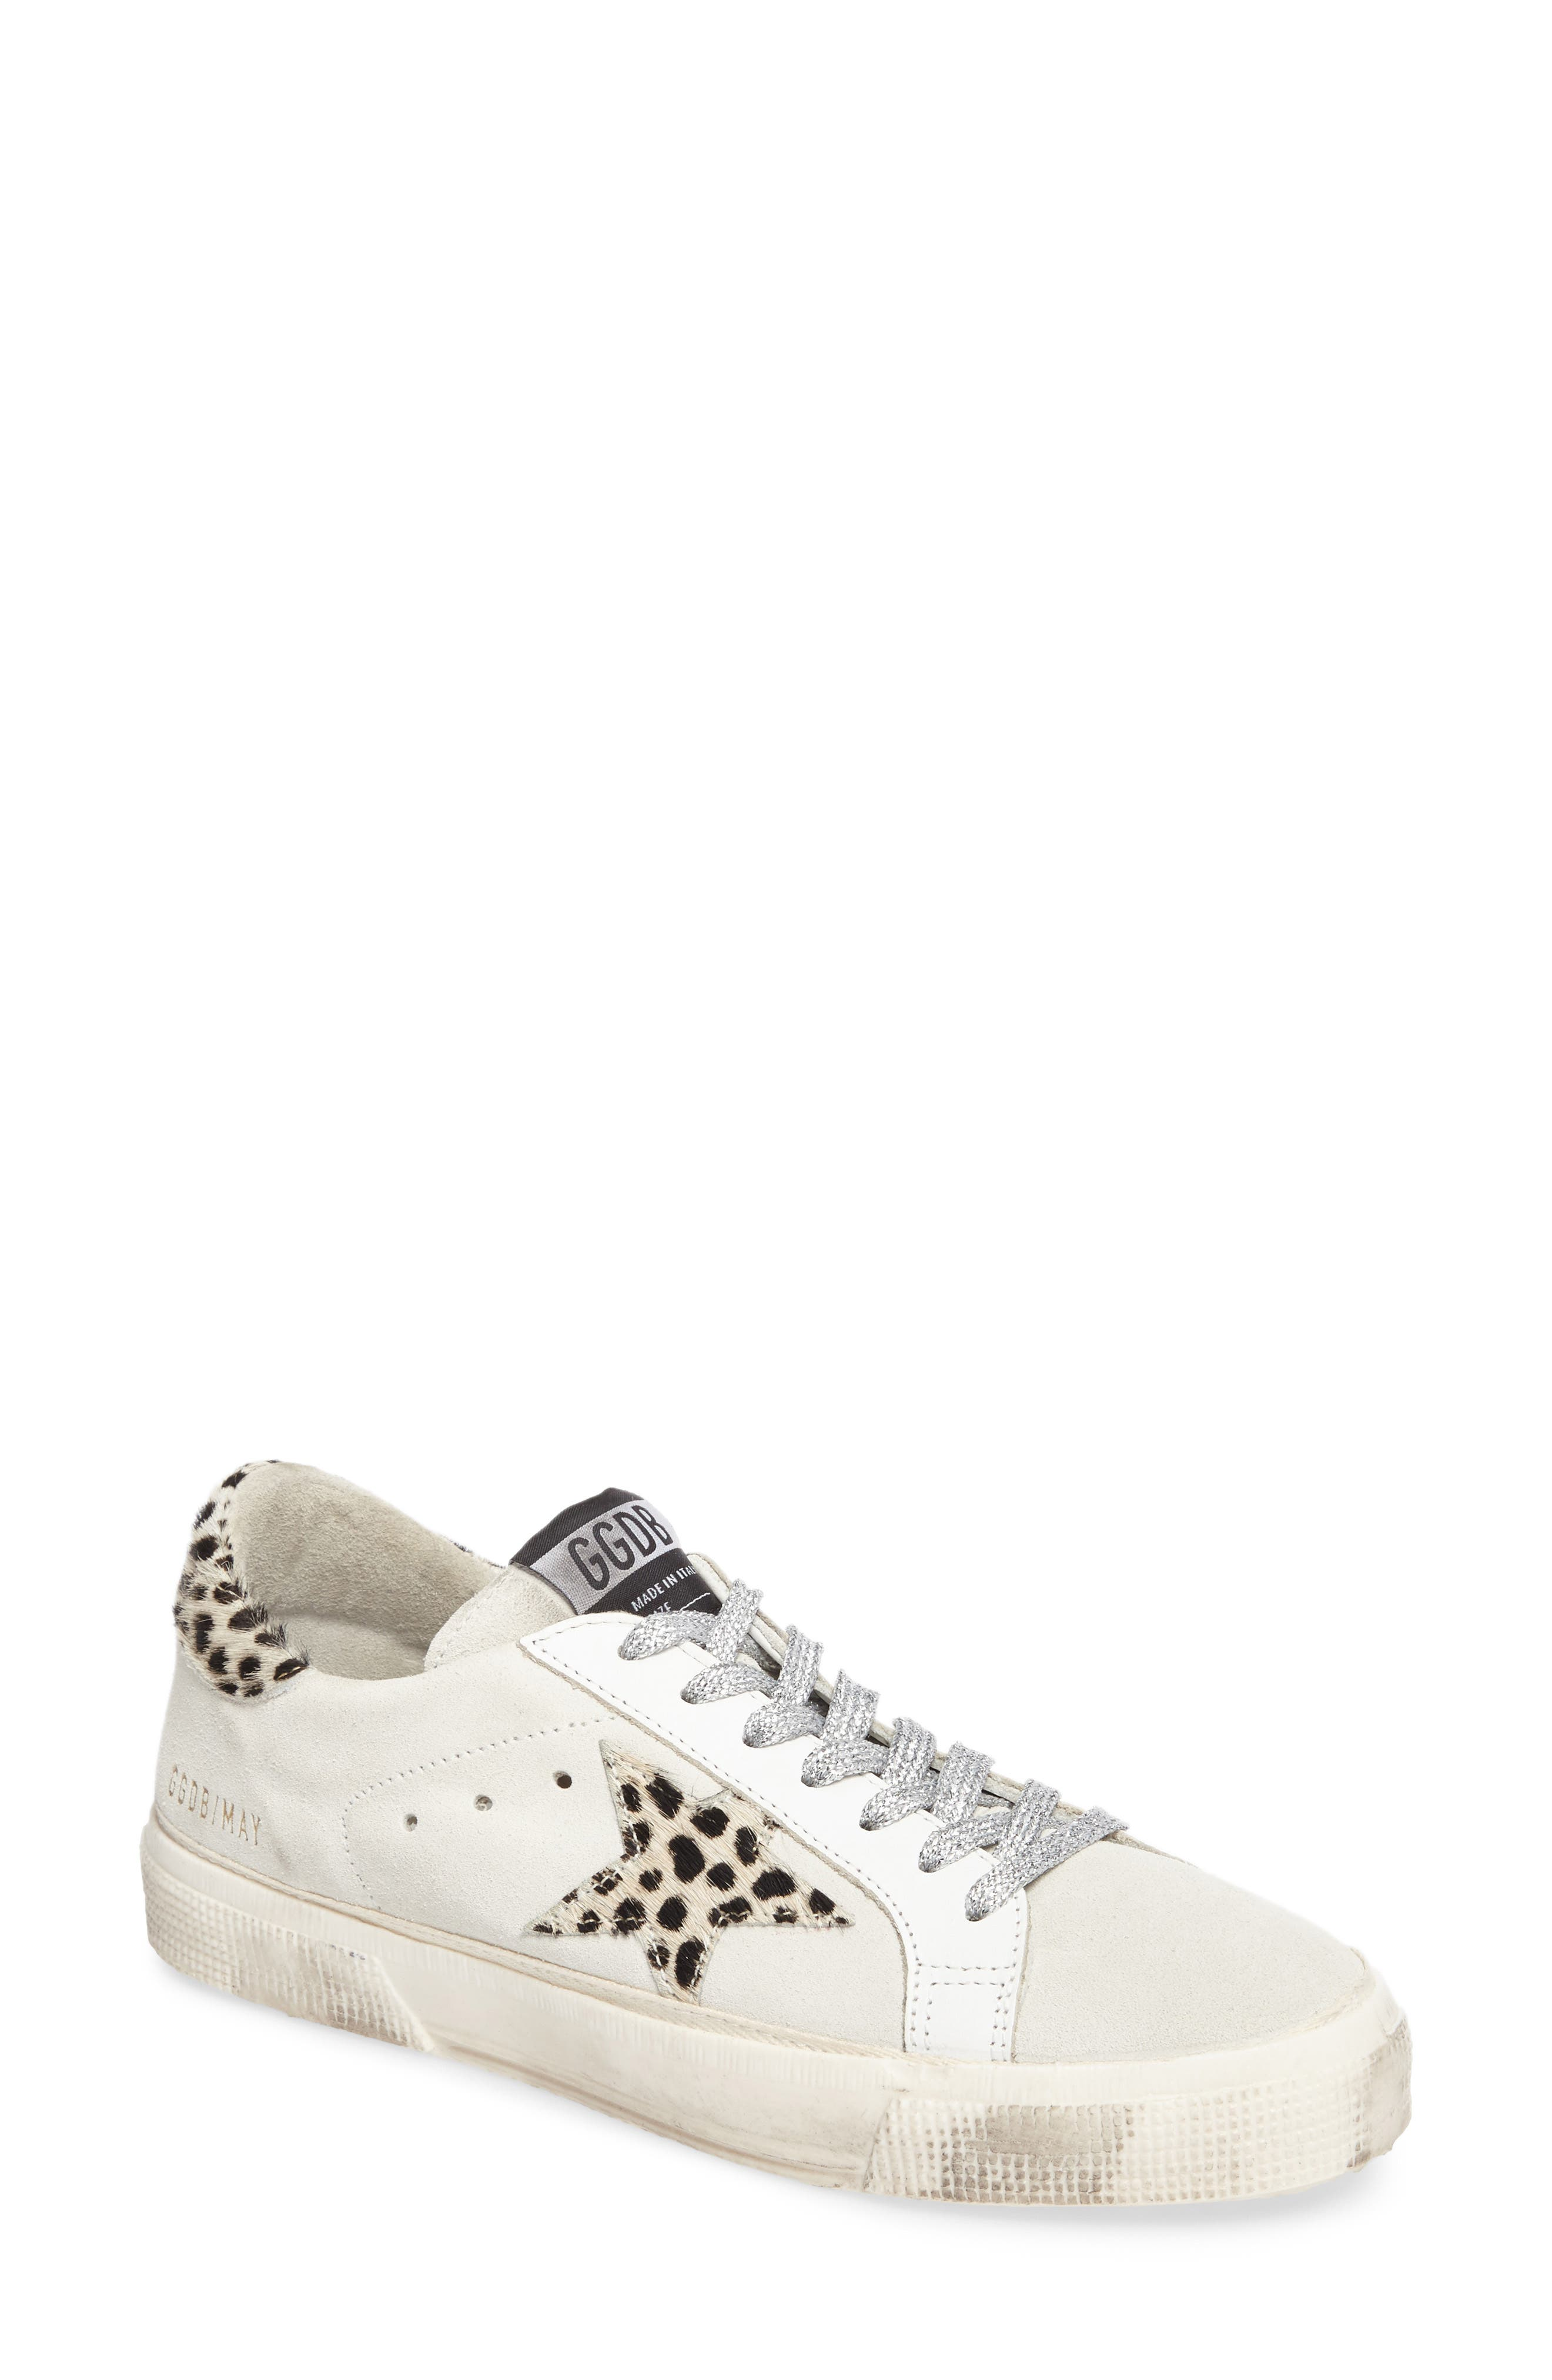 May Low Top Sneaker,                         Main,                         color, White Suede/ Leopard